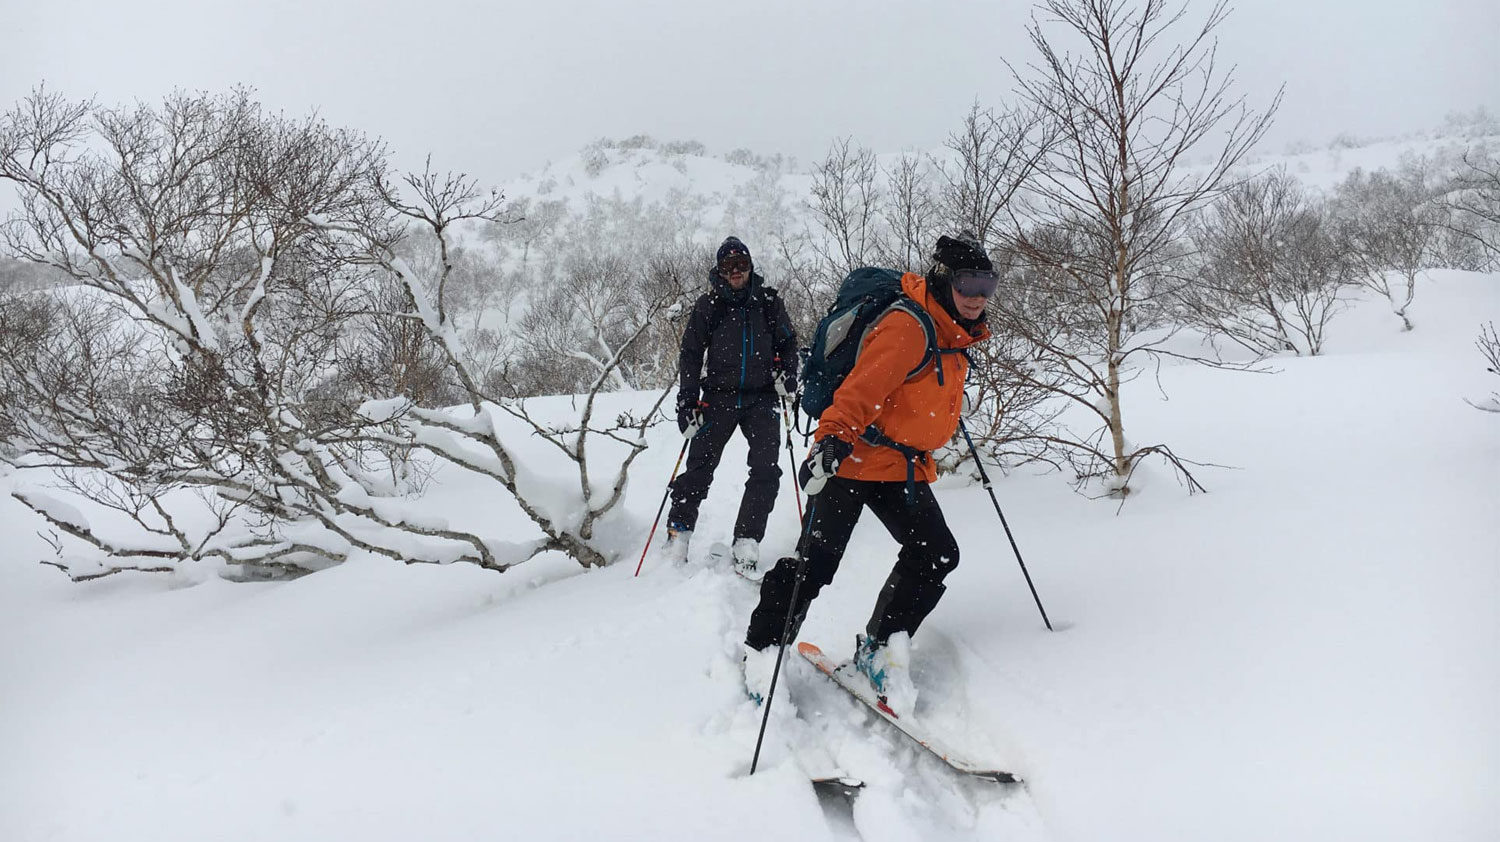 Backcountry skiing near Sapporo